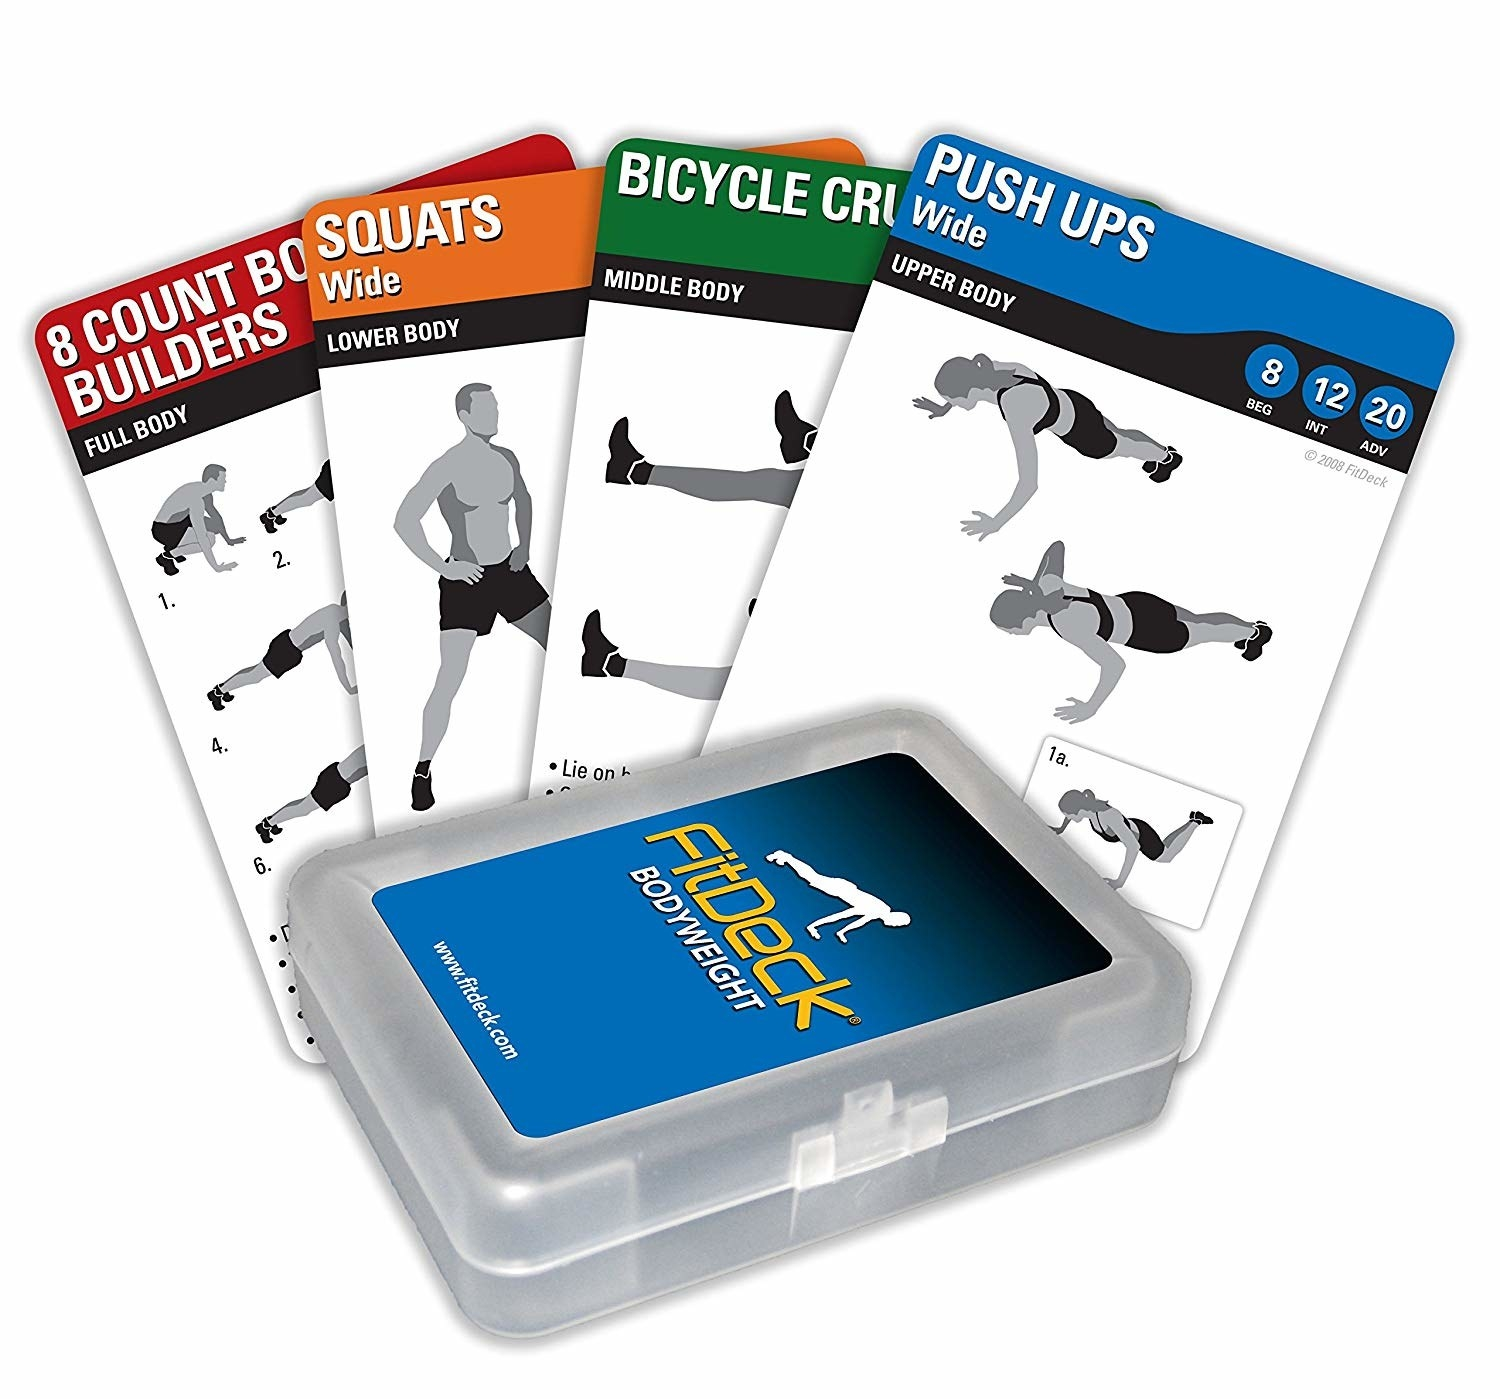 deck of workout cards with various routines like push ups and squats